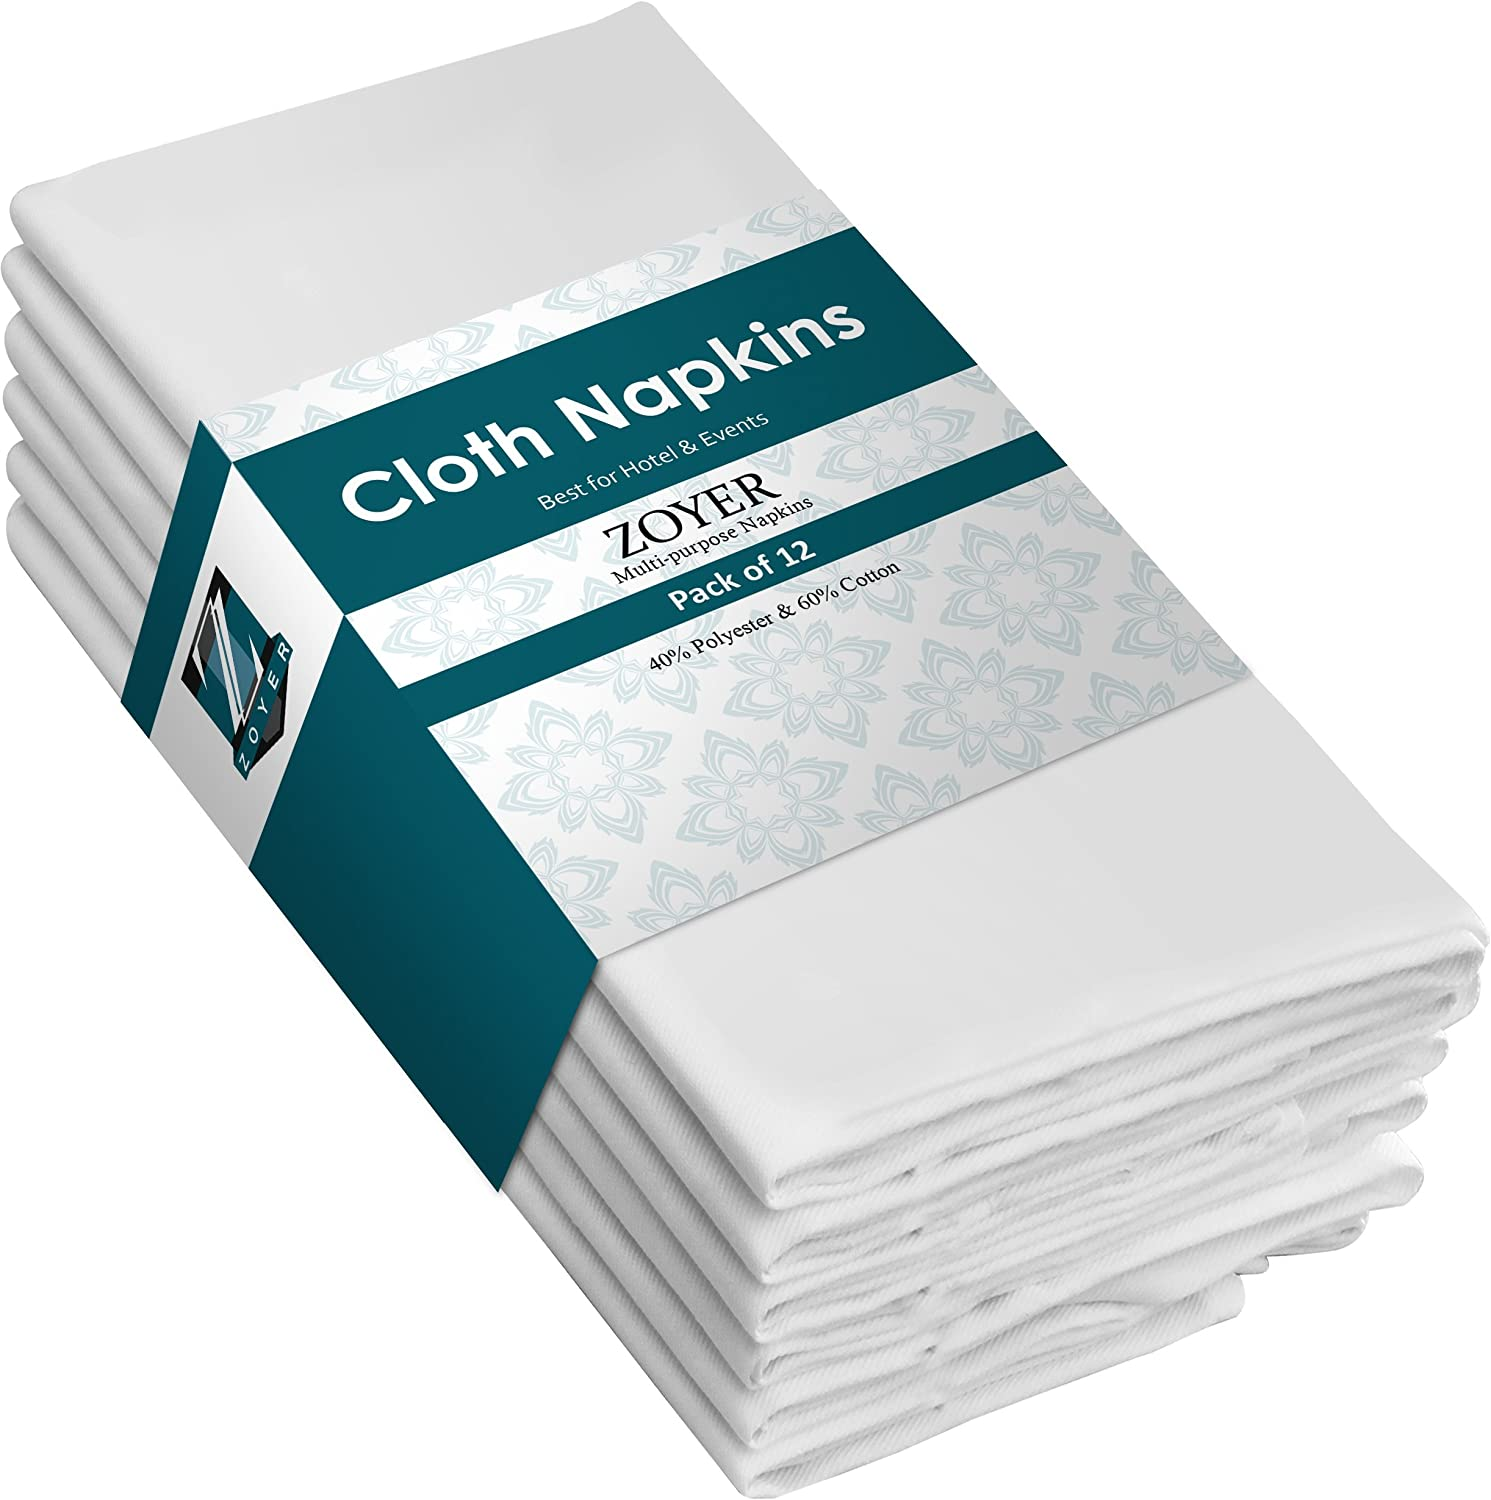 Zoyer Cotton Dinner Napkins - 12 Pack (18x18 Inch) Soft Restaurant Napkins Durable Hotel Quality Ideal for Events - White ZB0011